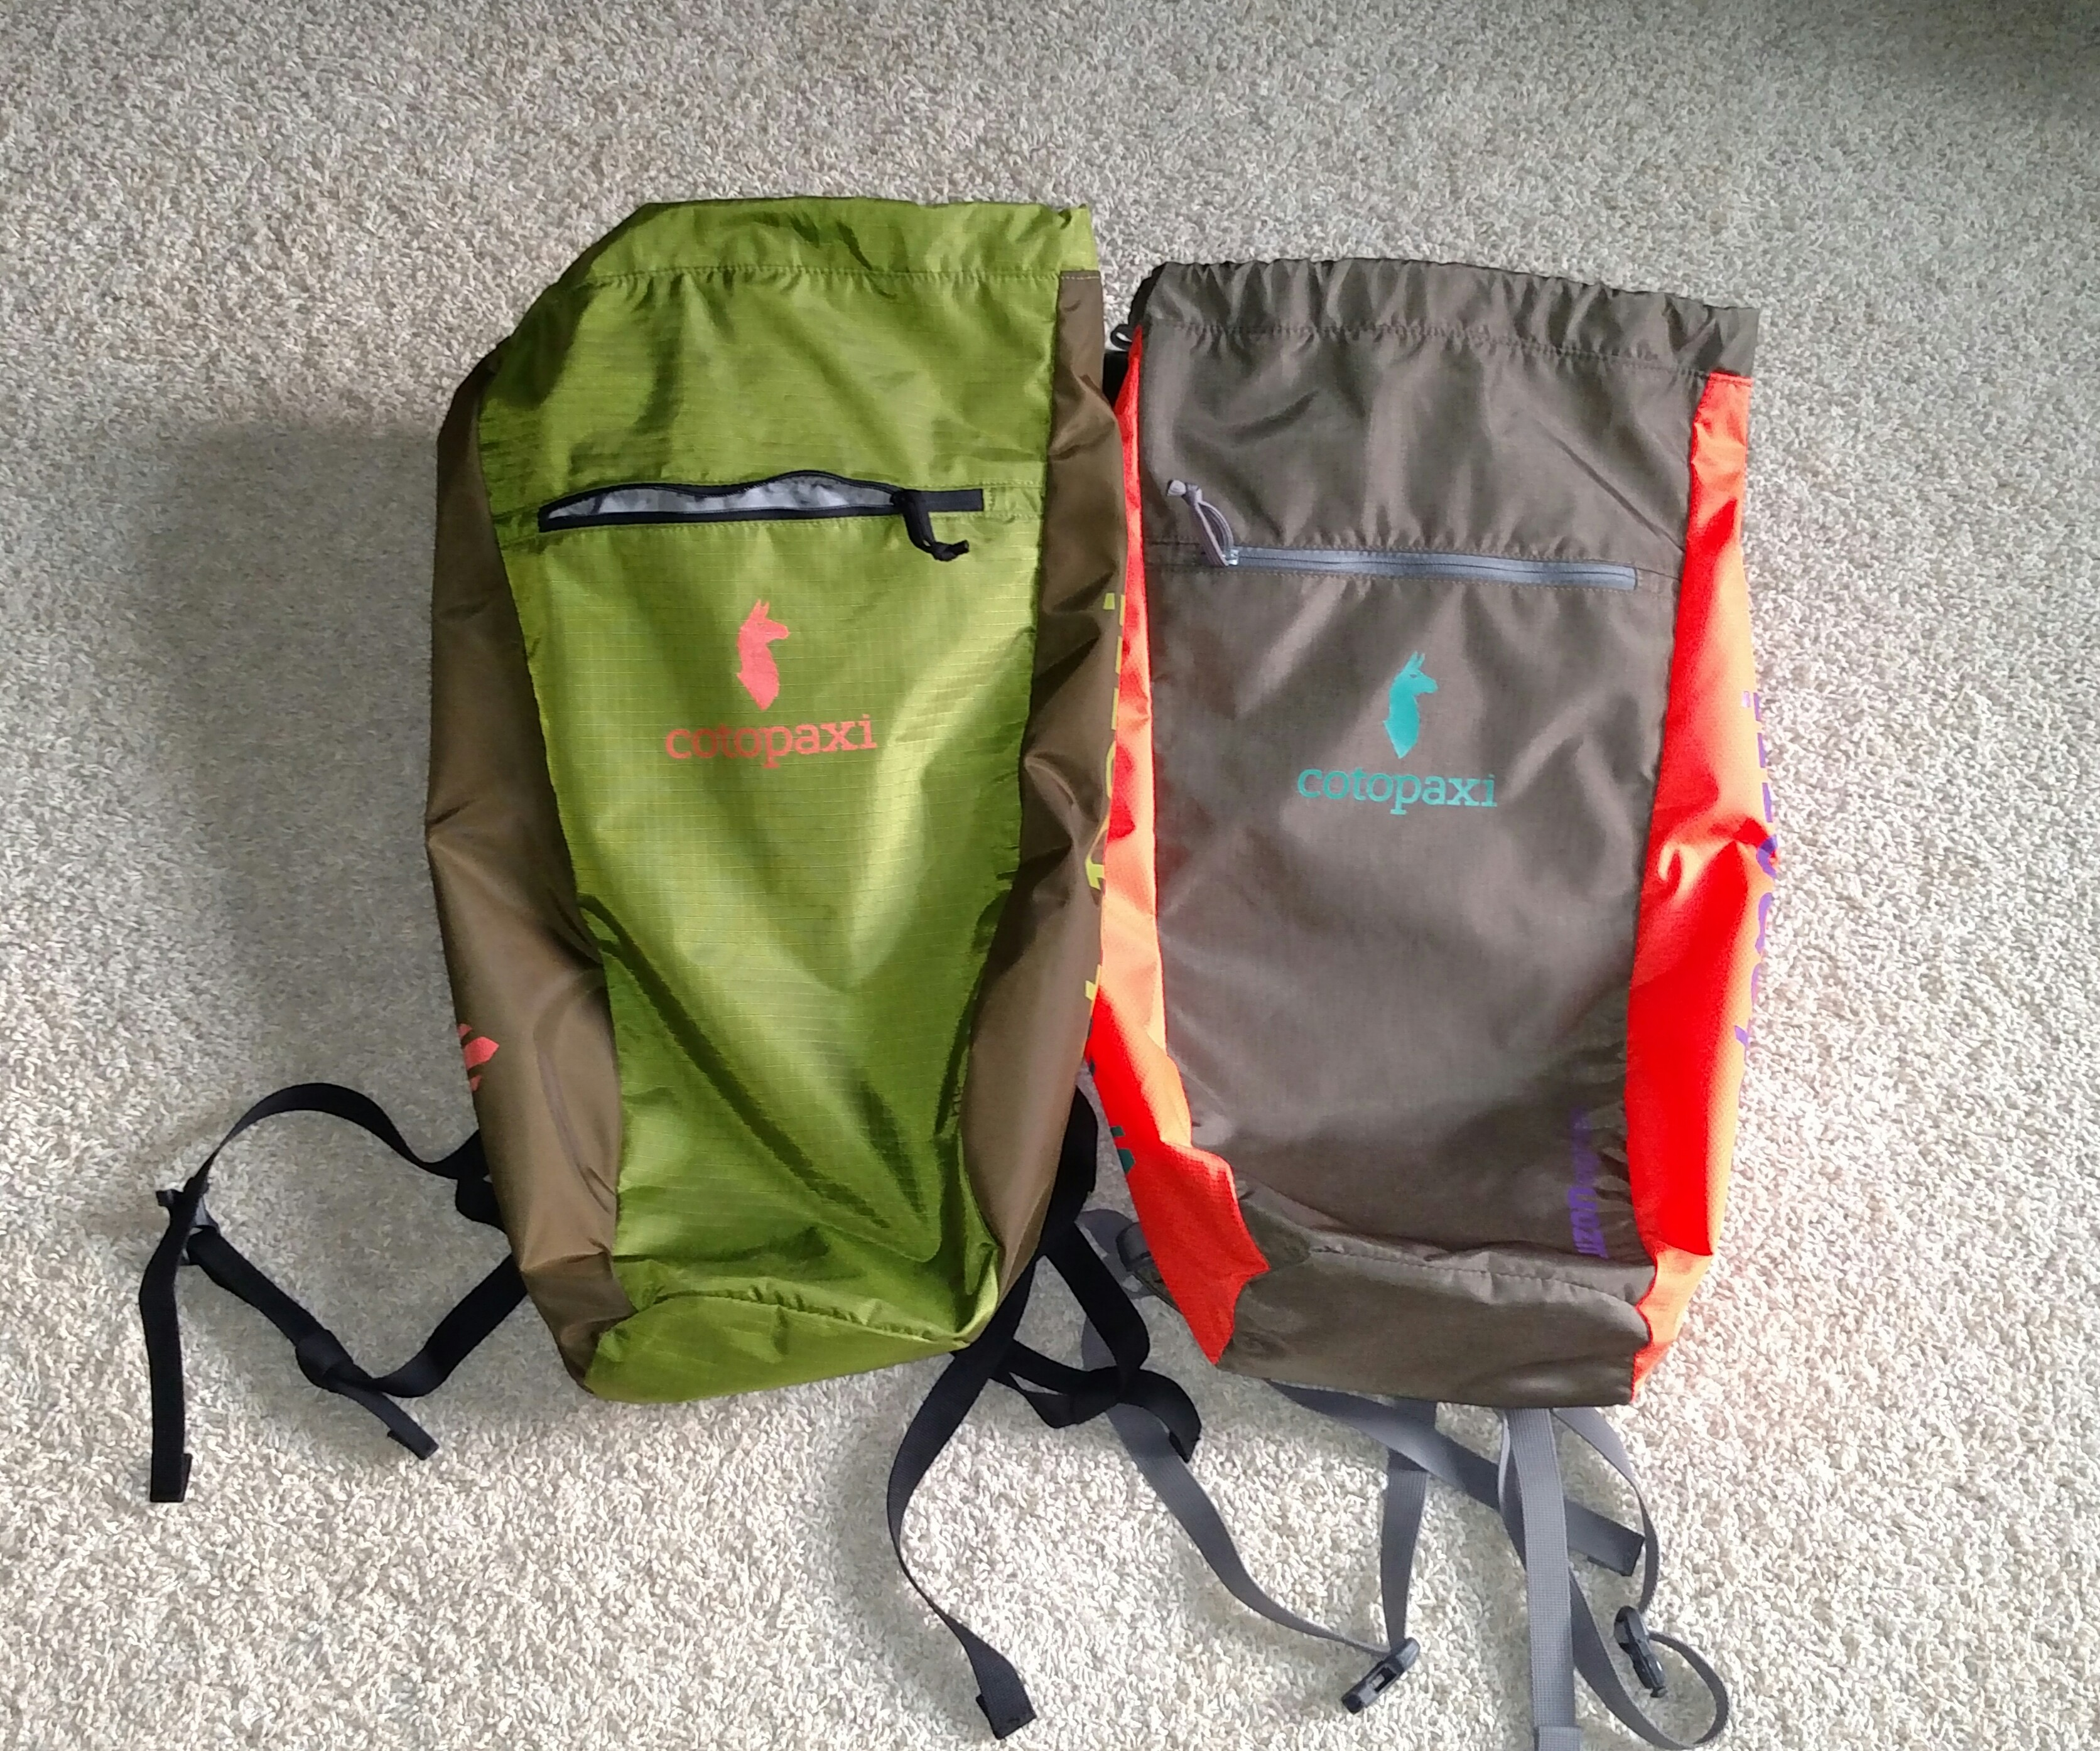 The Luzon 18L Daypack in Boba Fettish and Nekark stylings. There are also six other color schemes available.